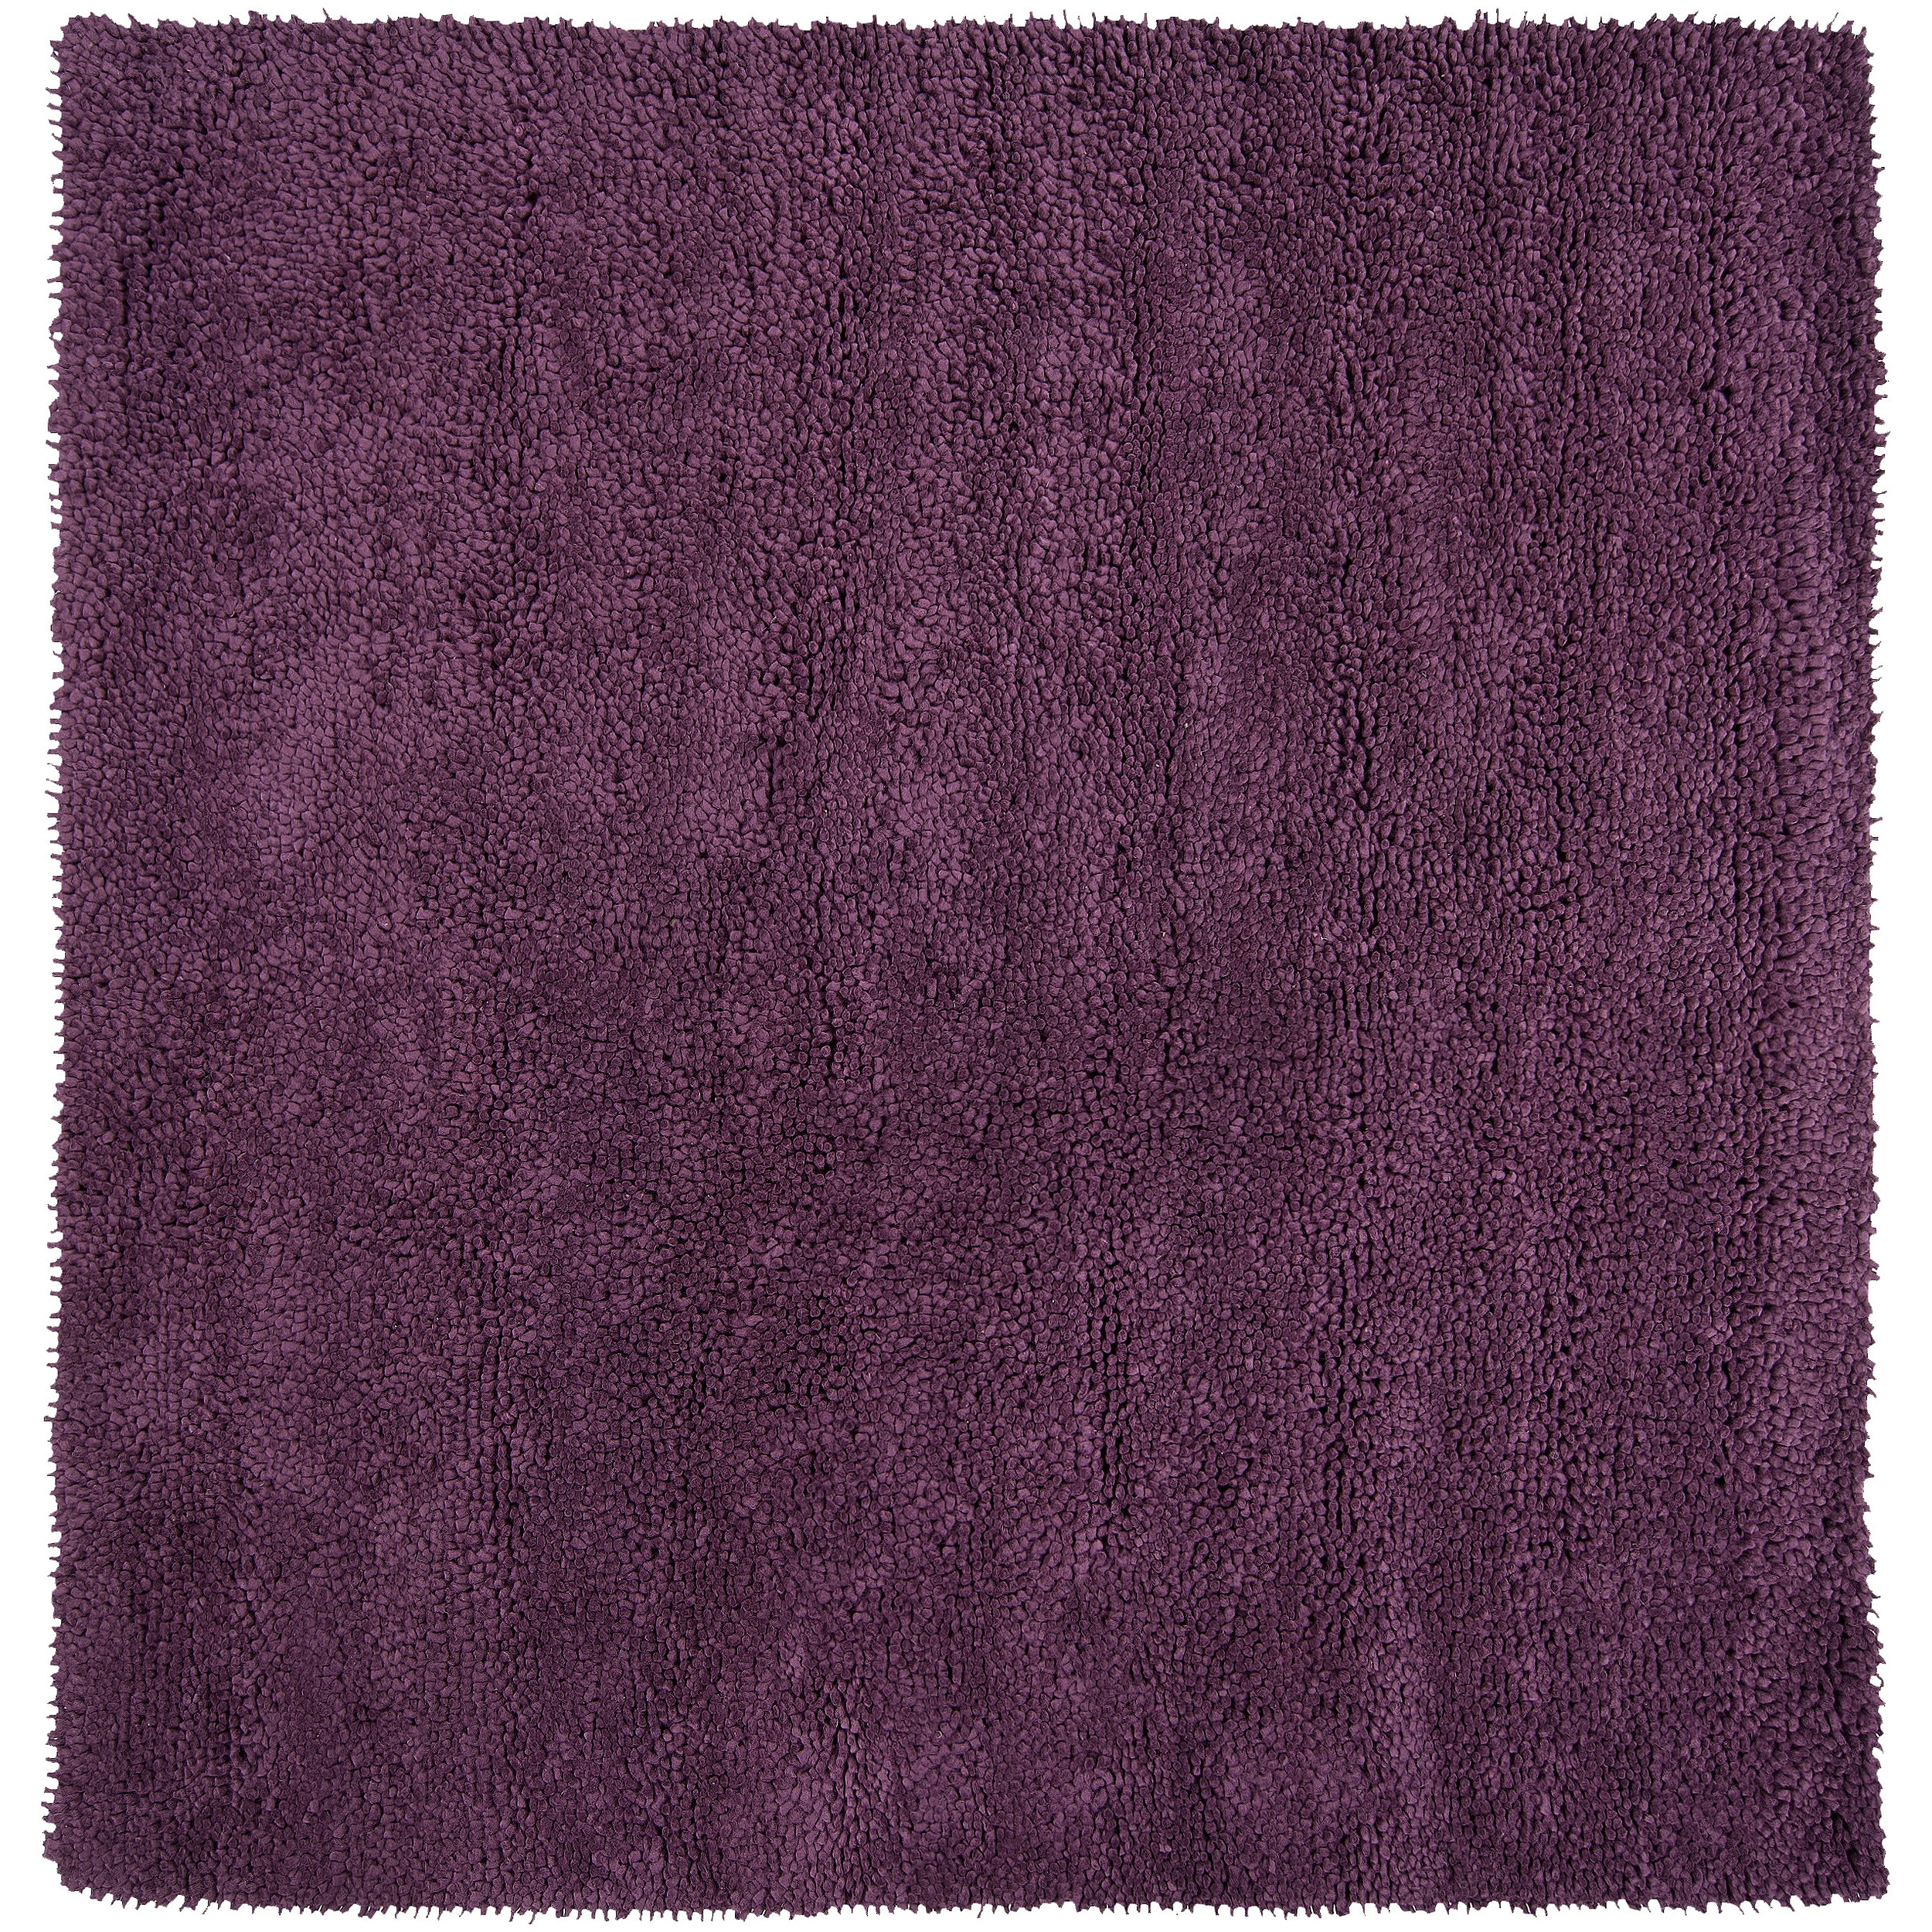 Hand-woven Purple Birks Colorful Plush Shag New Zealand Felted Wool Rug (8' Square)